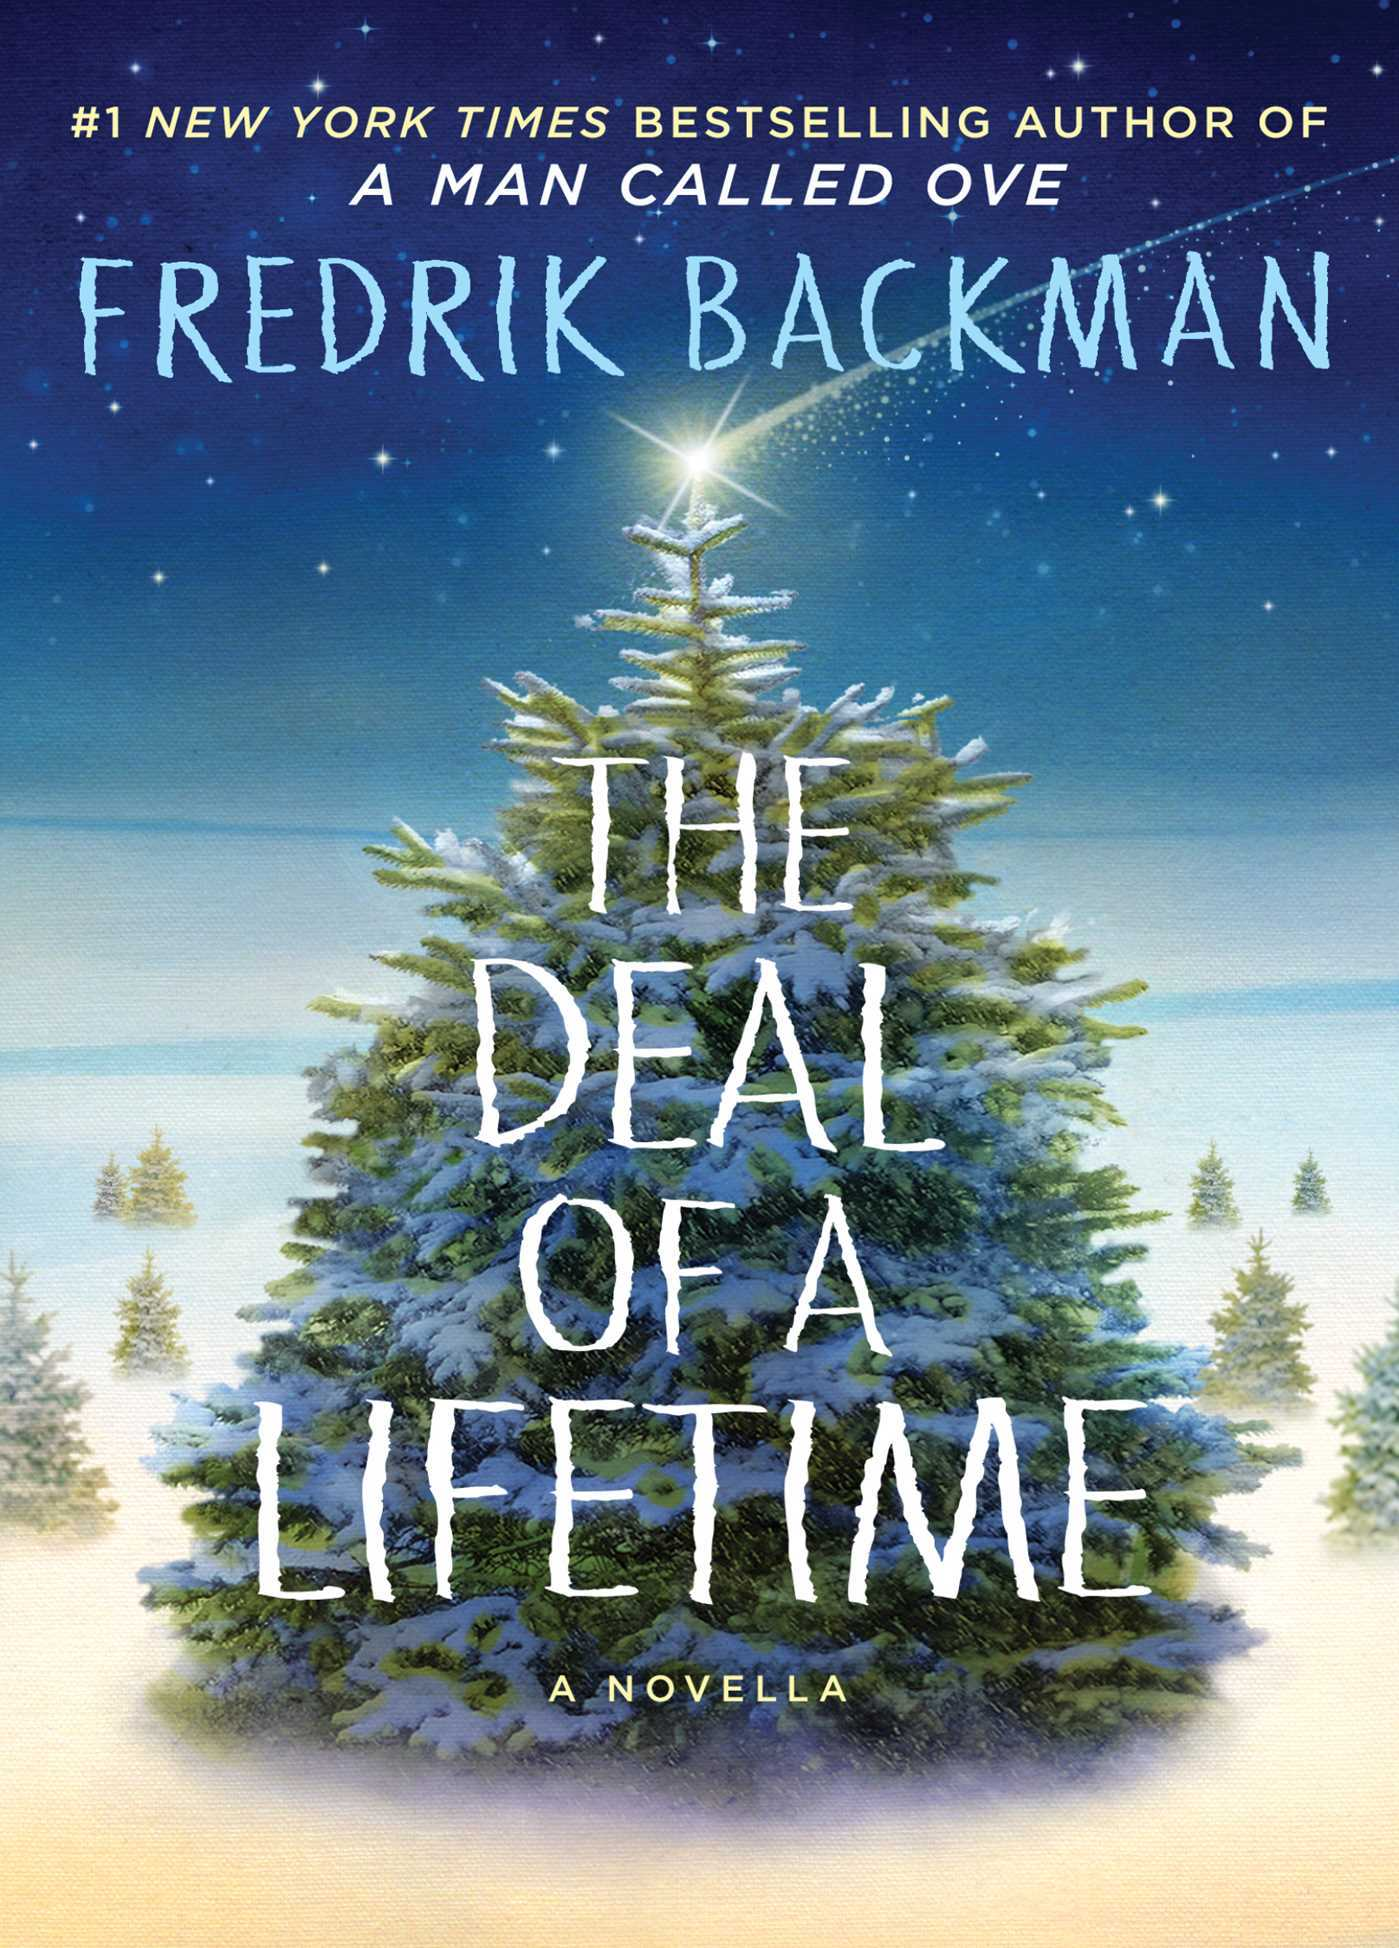 Fredrik Backman - The Deal of a Lifetime